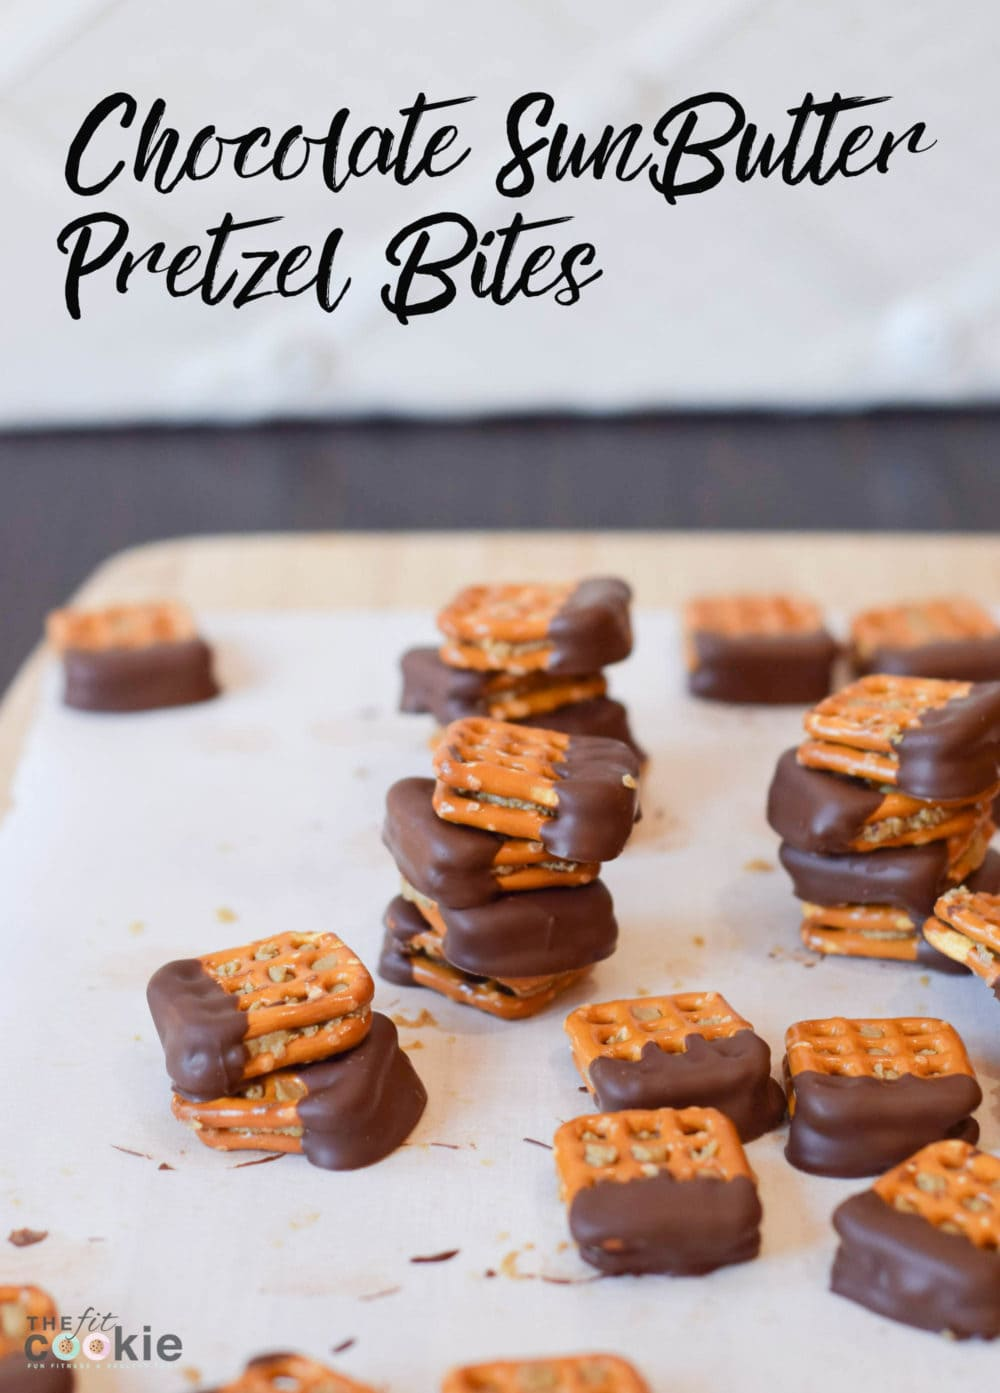 Need peanut-free snacks for school? Make these Chocolate SunButter Pretzel Bites with Snyder's of Hanover (now peanut-free!) - #sponsored #peanutfree #snacks #PretzelBaby